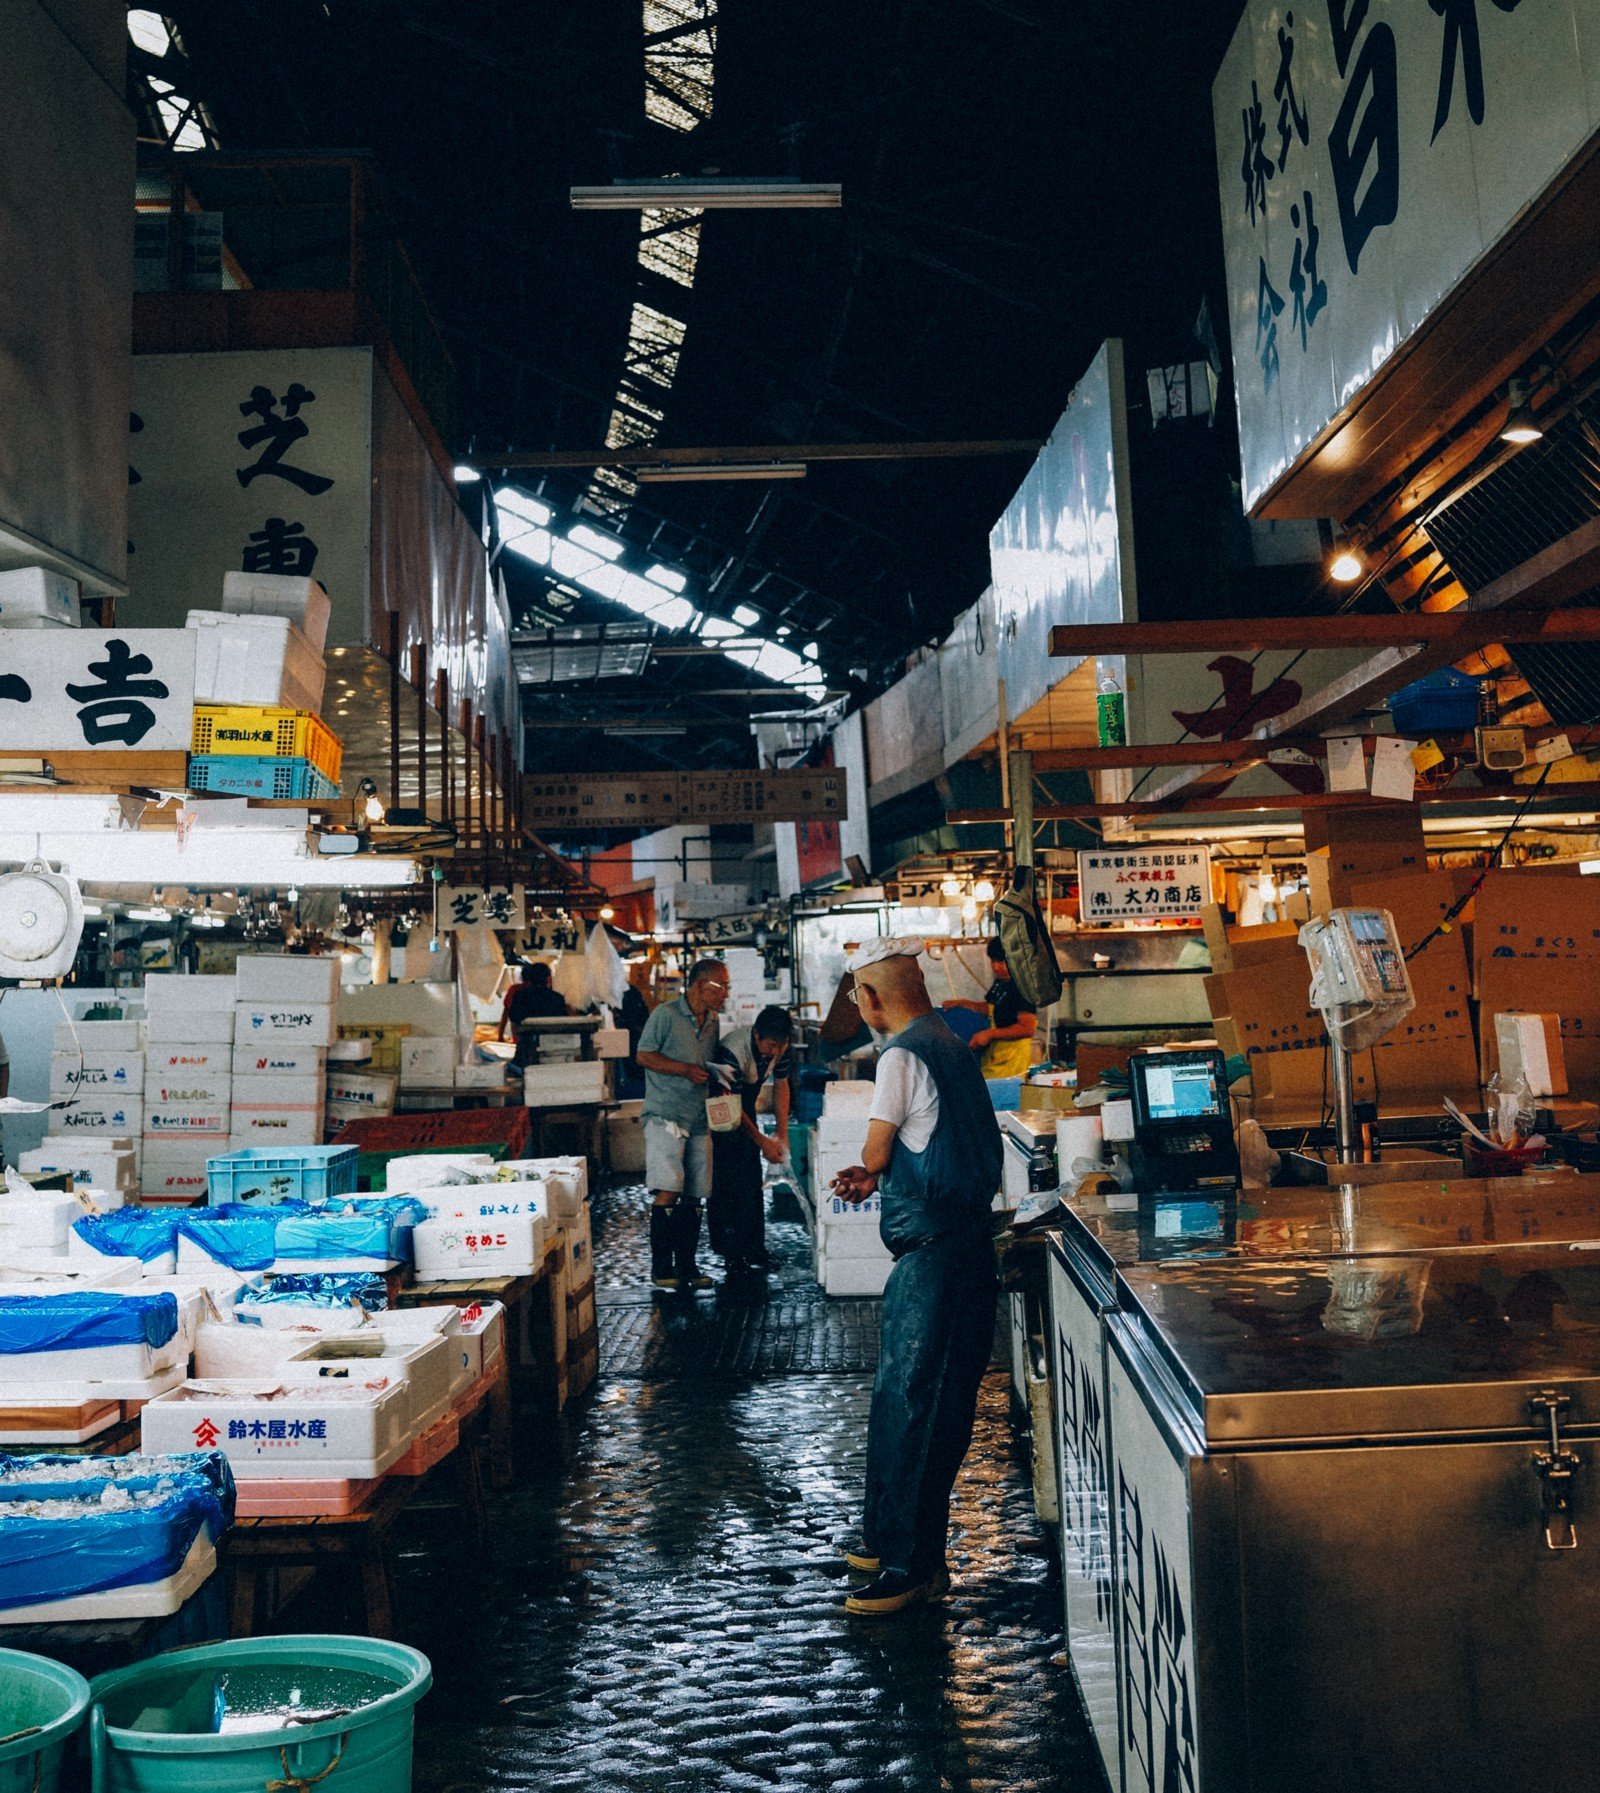 Notes from japan maxistentialism blog medium for Your inner fish sparknotes